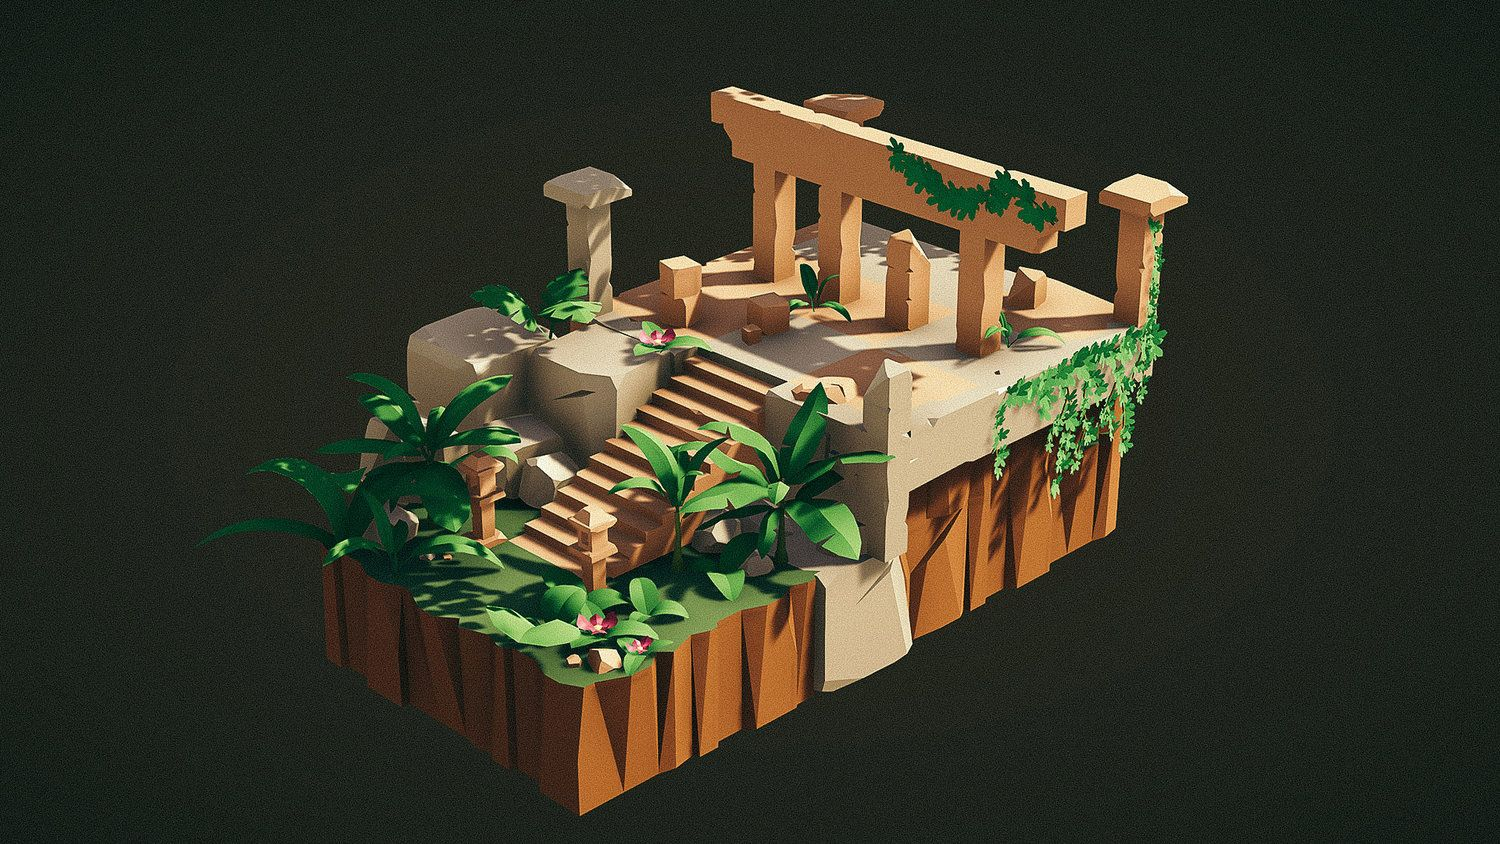 The Lost Lands is a high quality modular stylized art